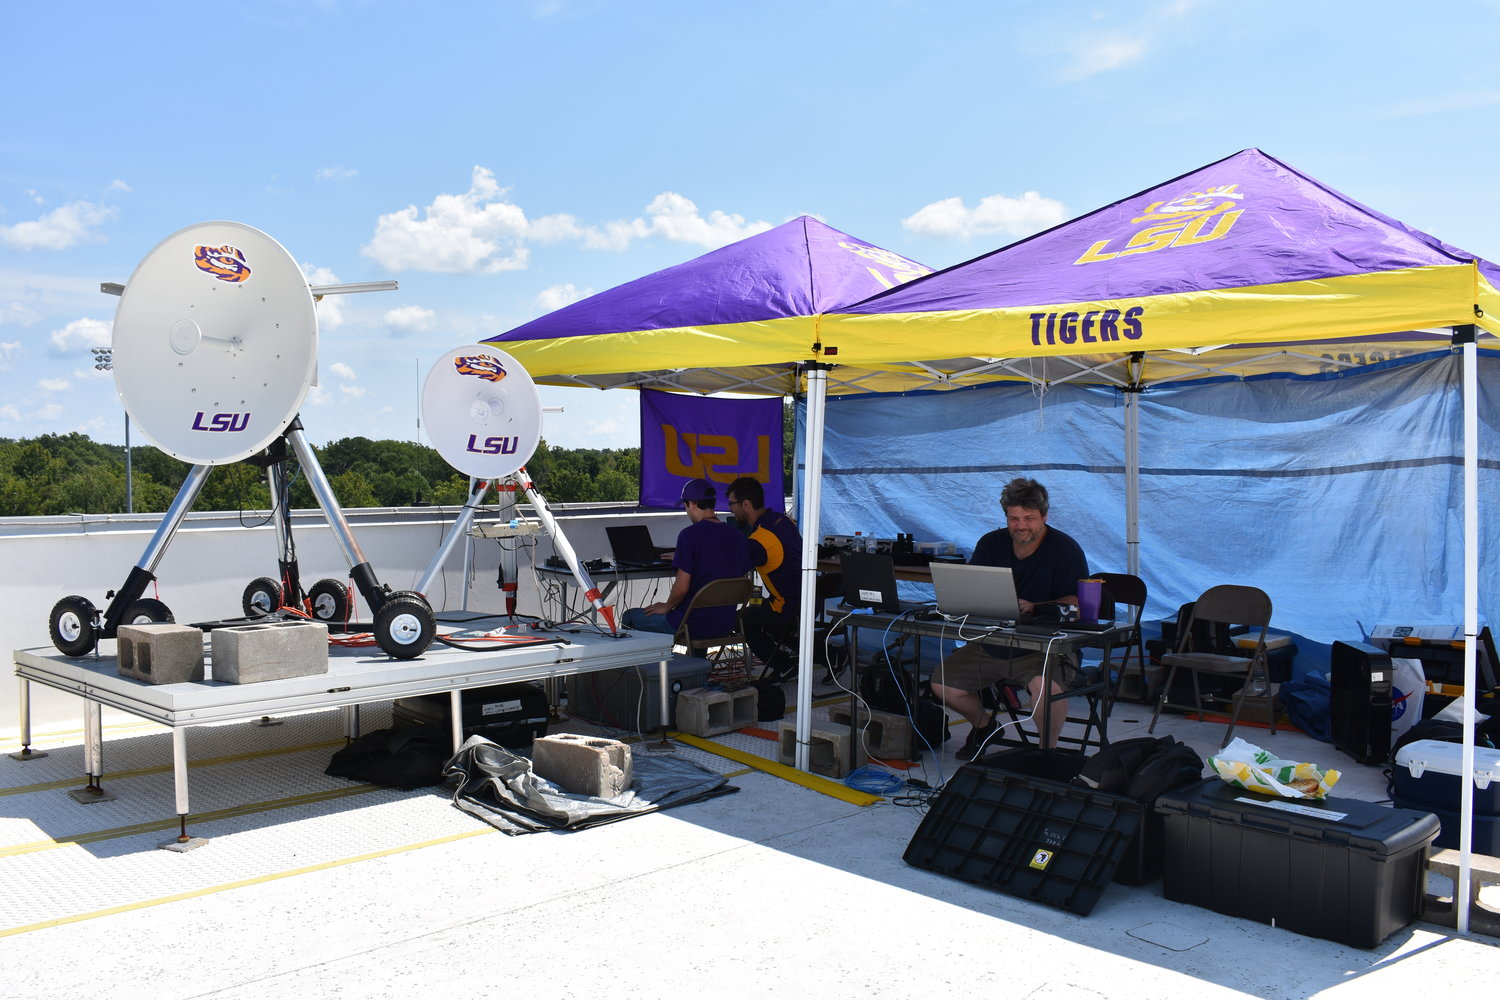 LSU ballooning ground station at the 2017 Eclipse event in Carbondale.